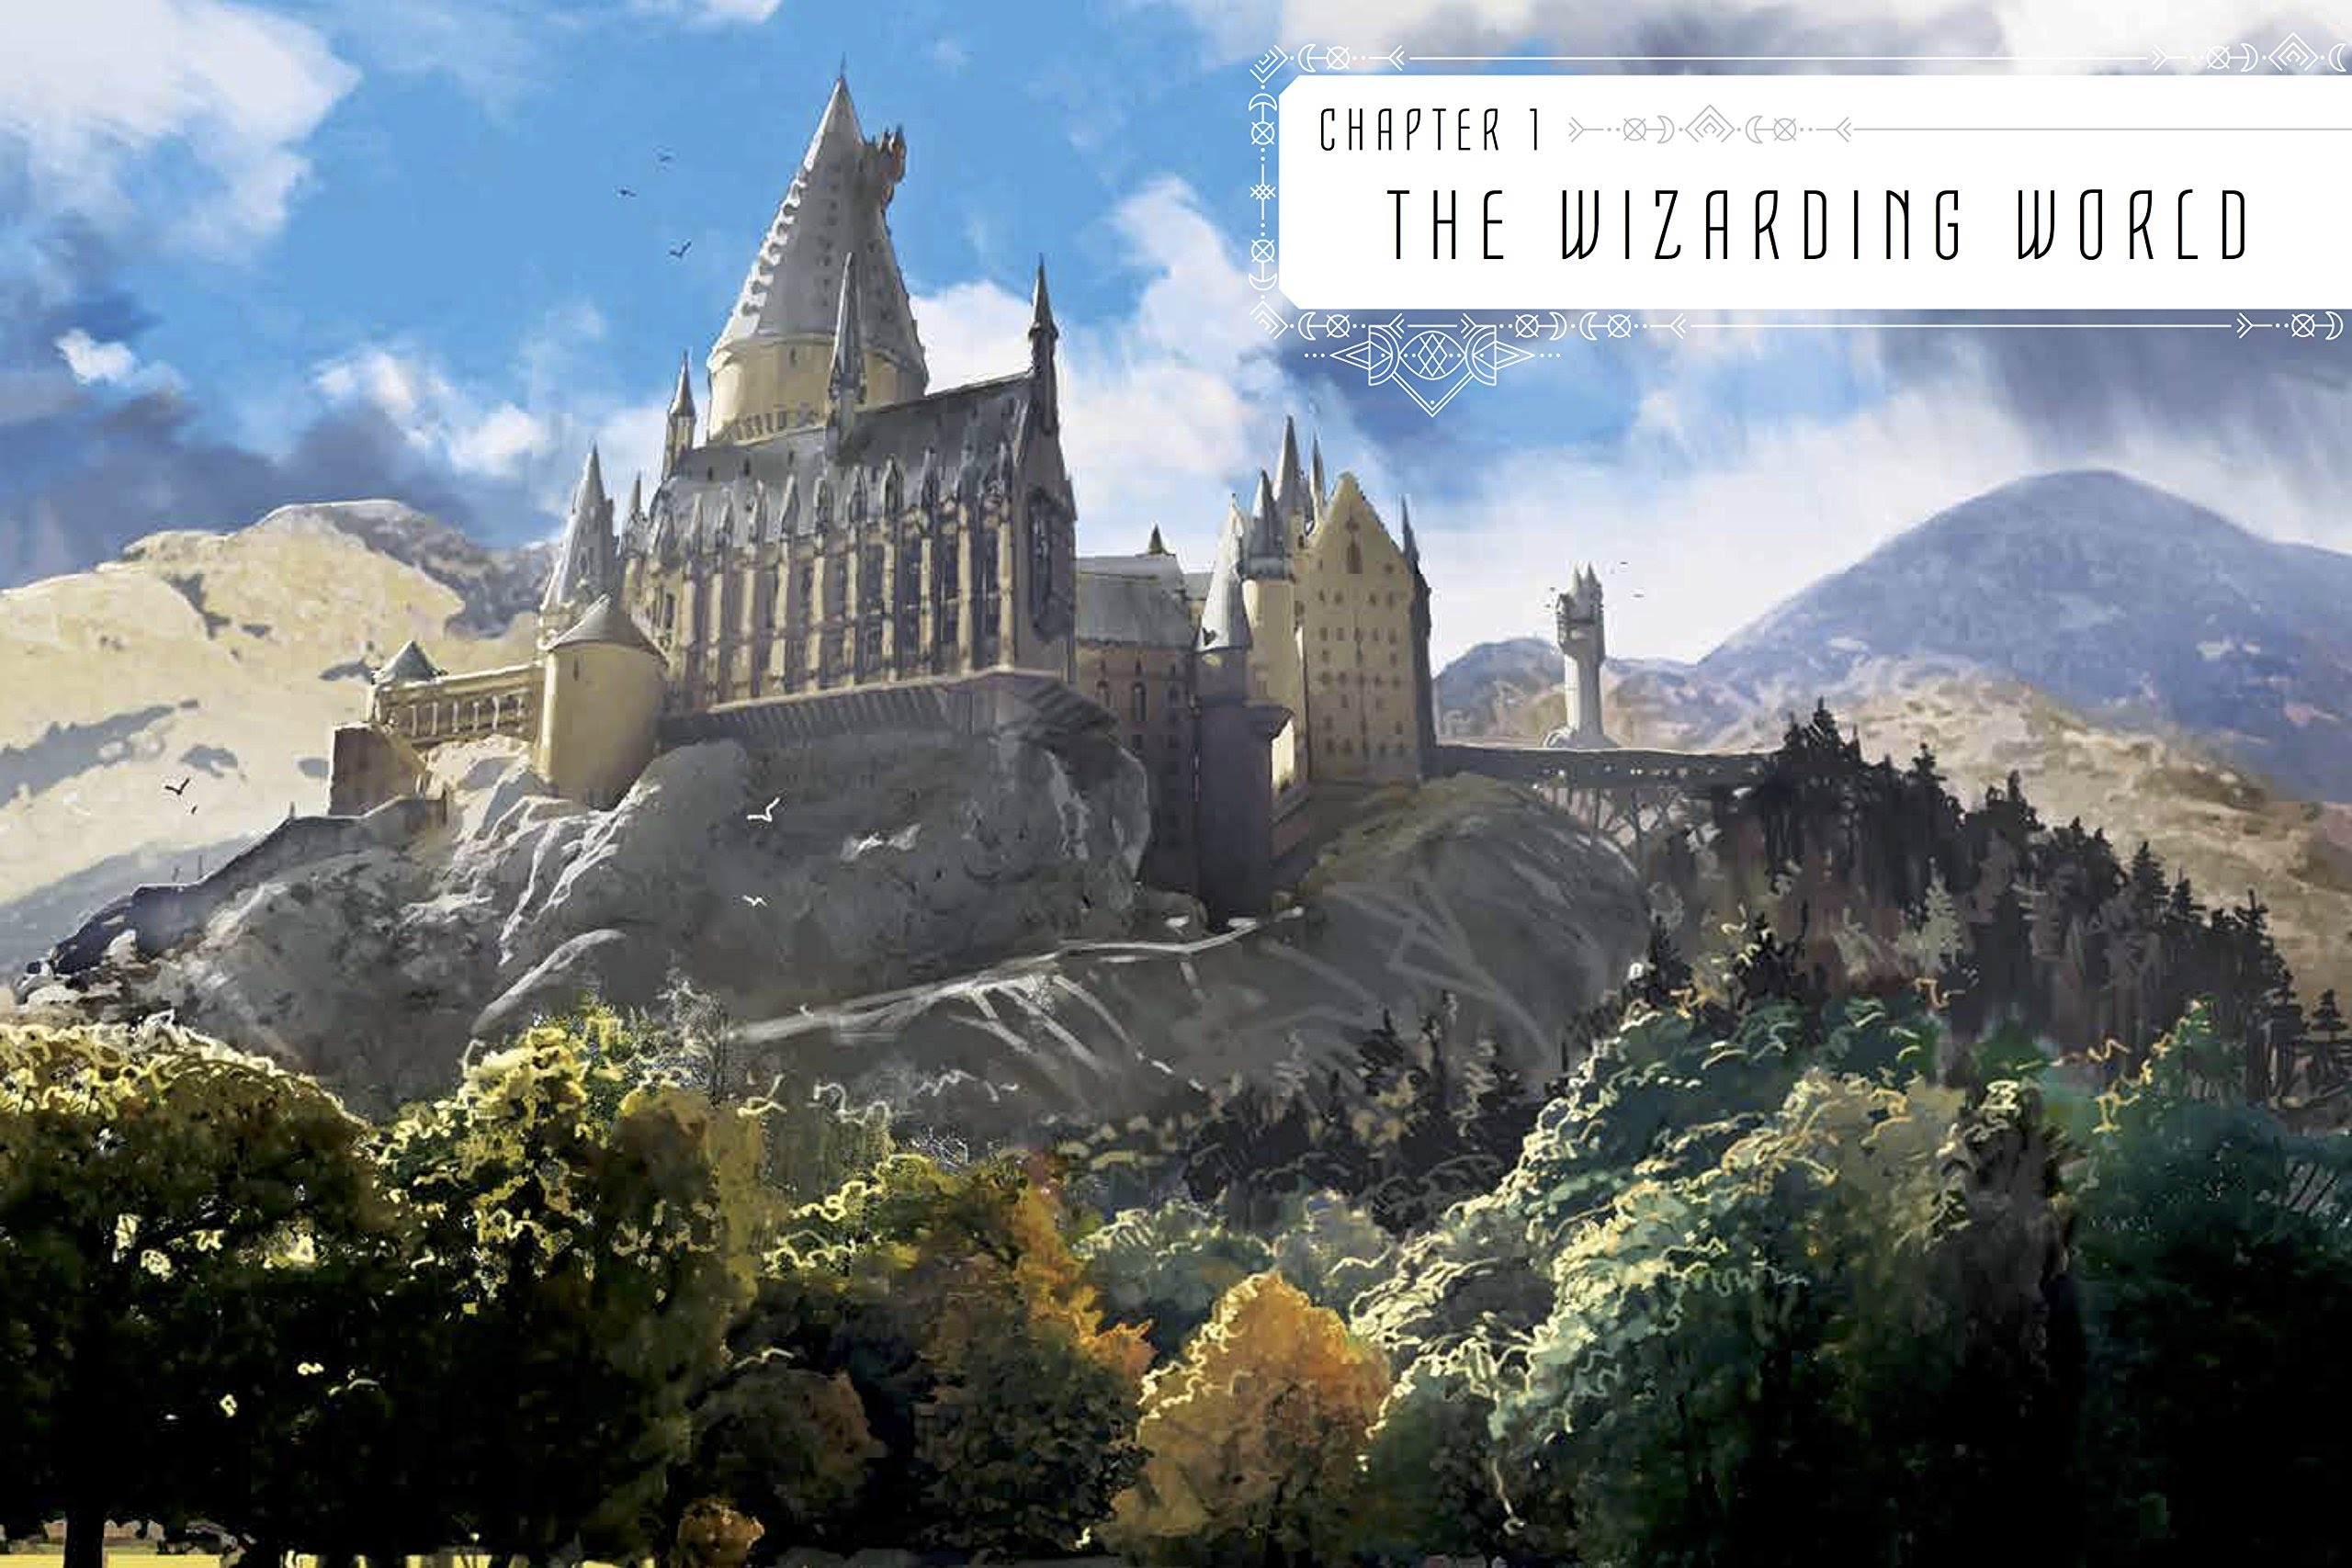 The Art of Harry Potter: hogwarts castle